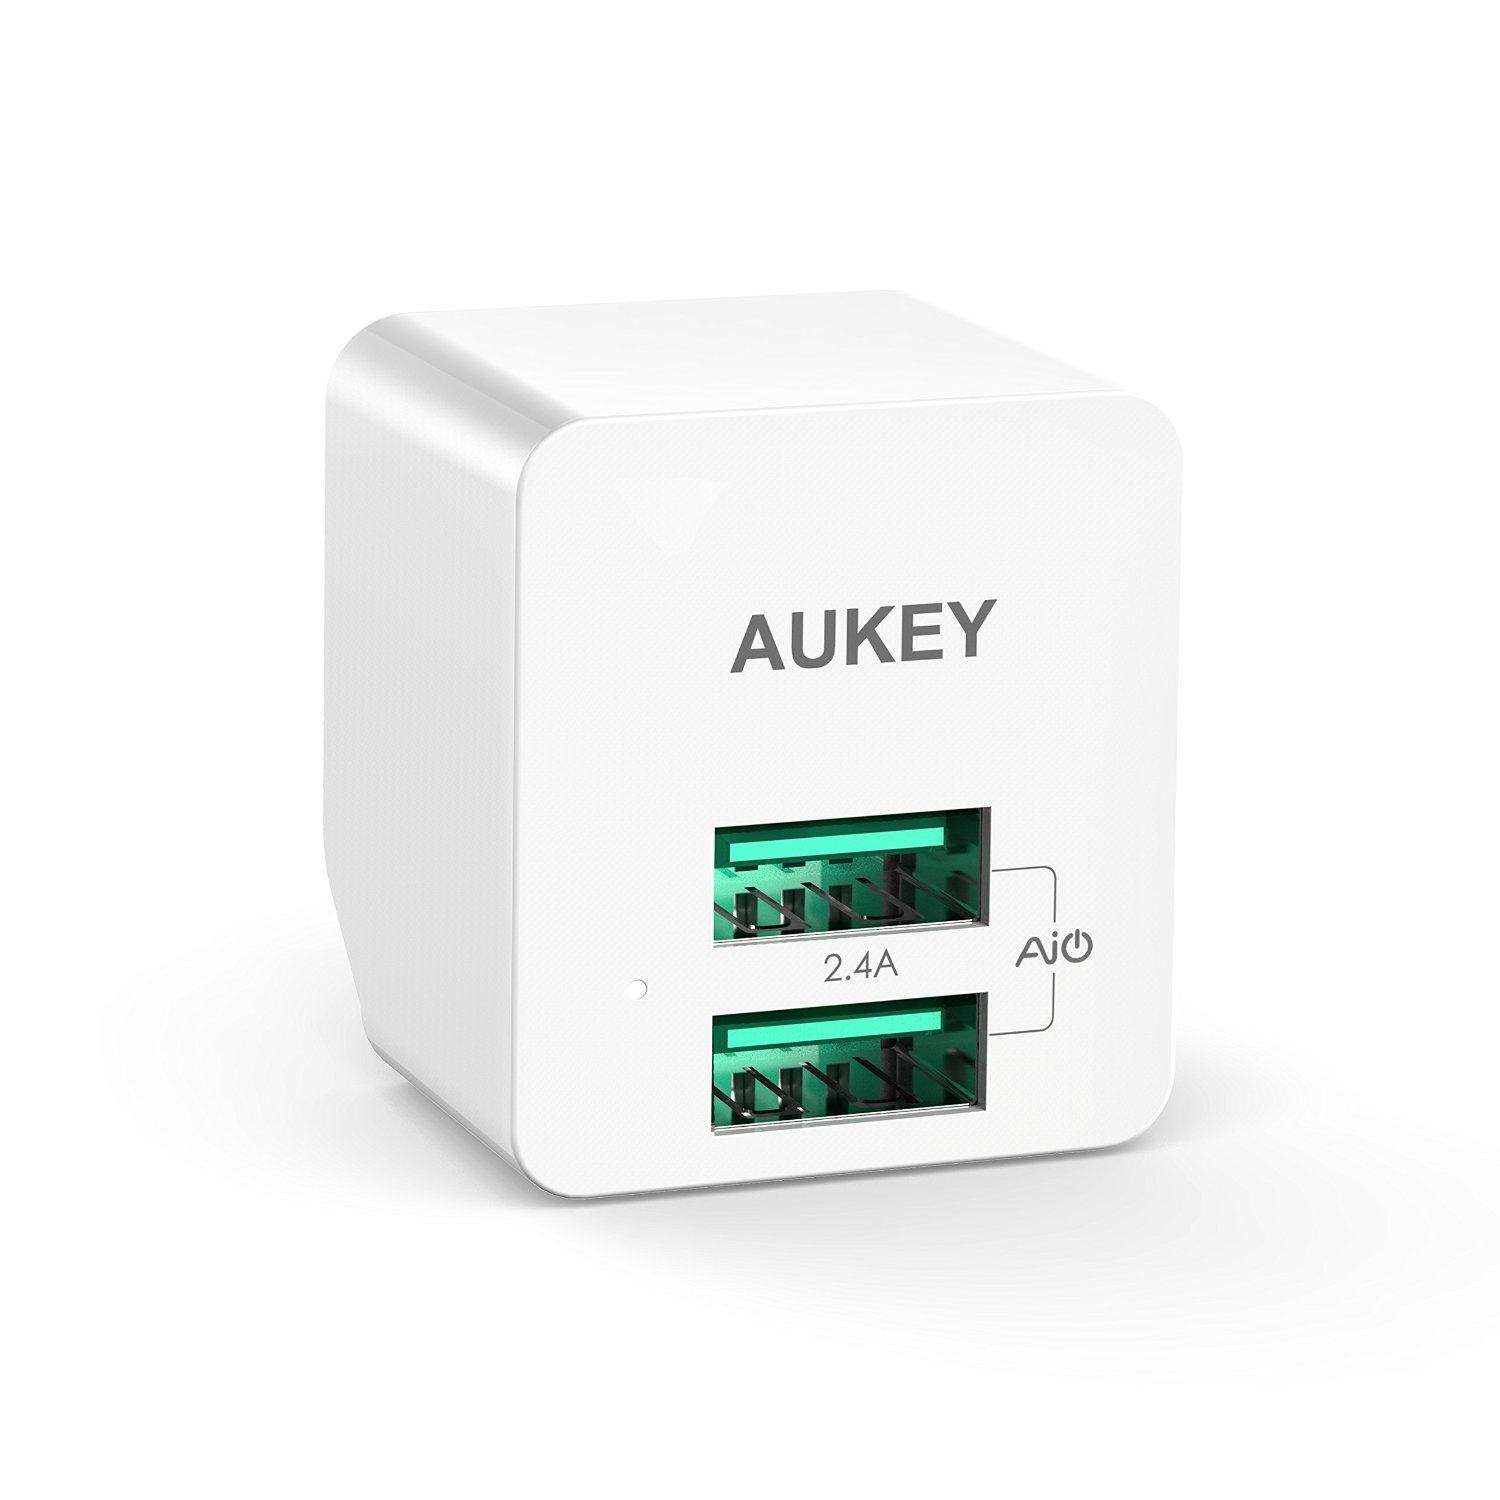 Deal Aukey Qc 20 Charger 599 Power Bank 1999 W Codes 30 If You Are After More Of A Portable Solution Then There Is Also The Quick Charge 10400 Mah Which Currently On Sale